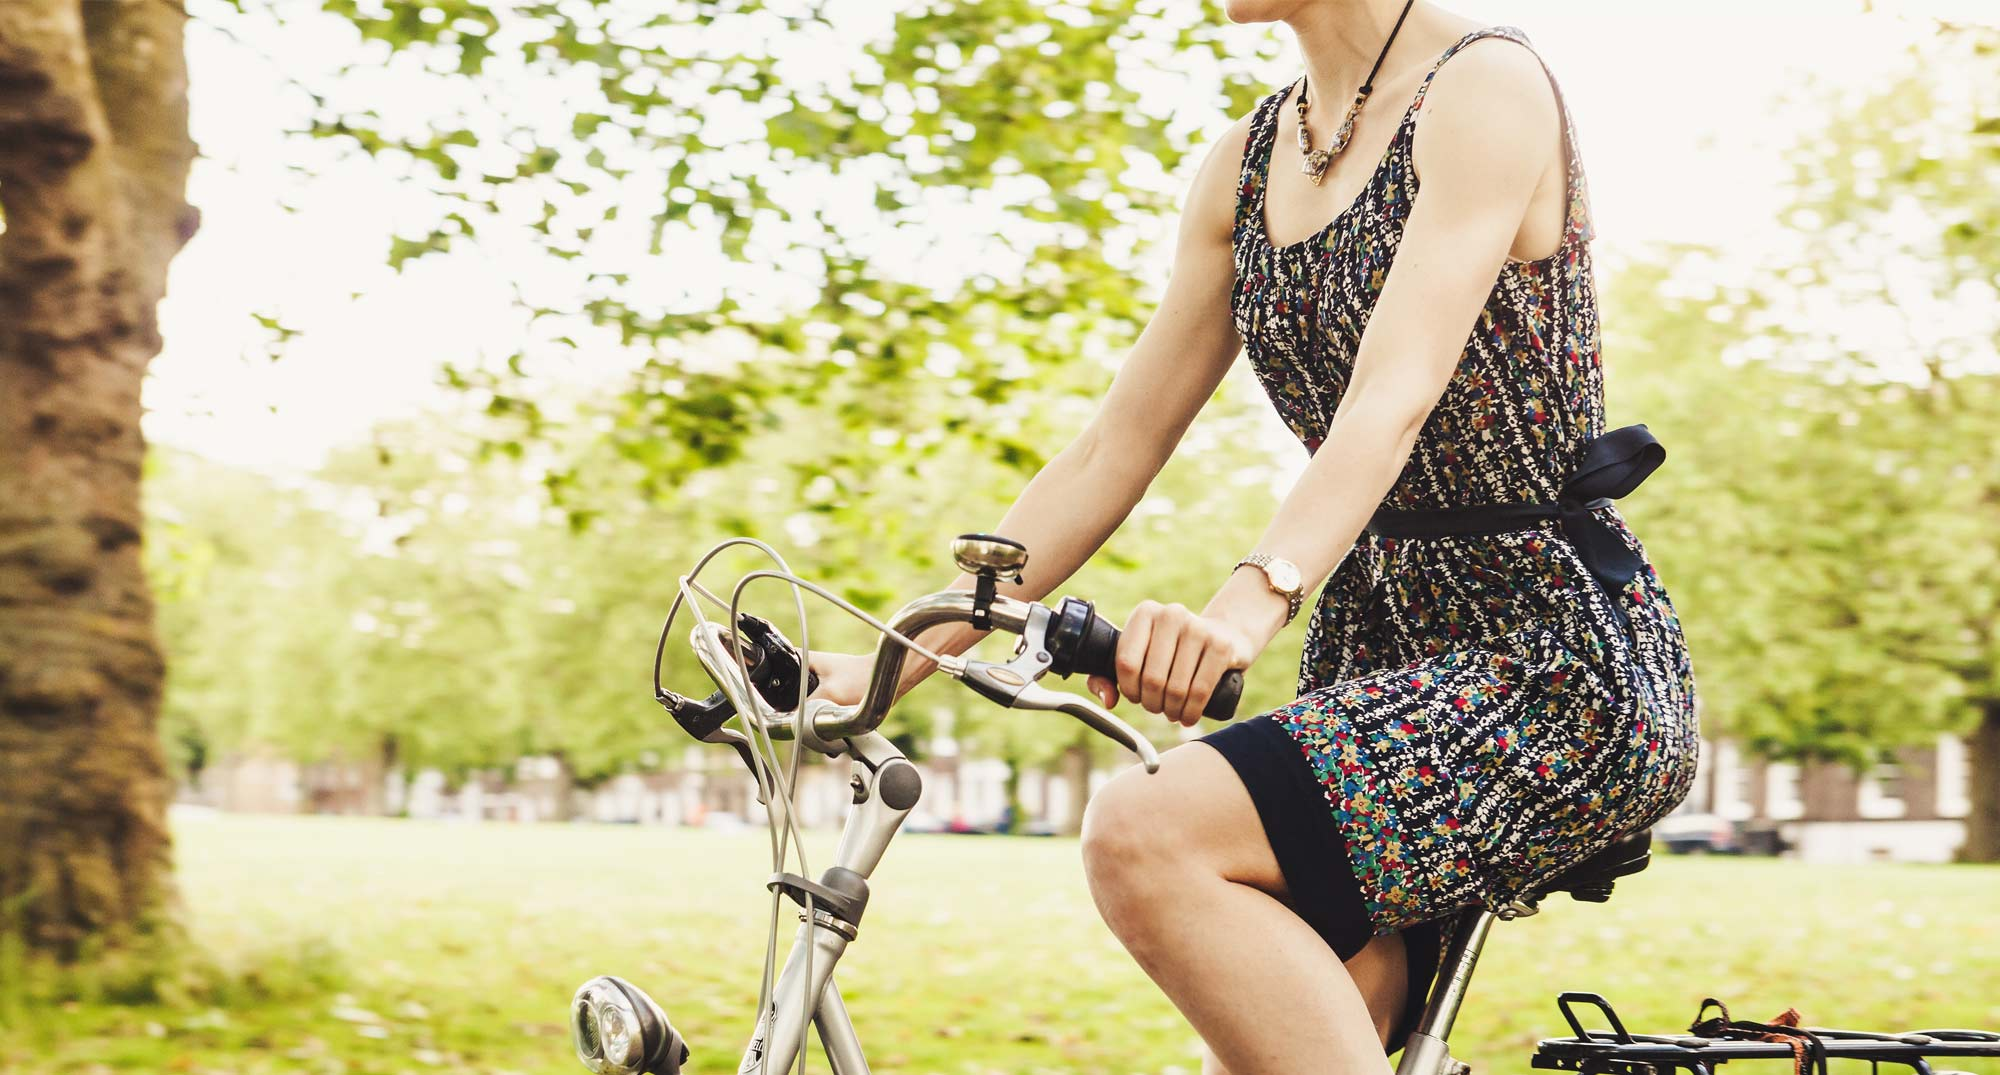 Preventing Type 2 Diabetes with Exercise